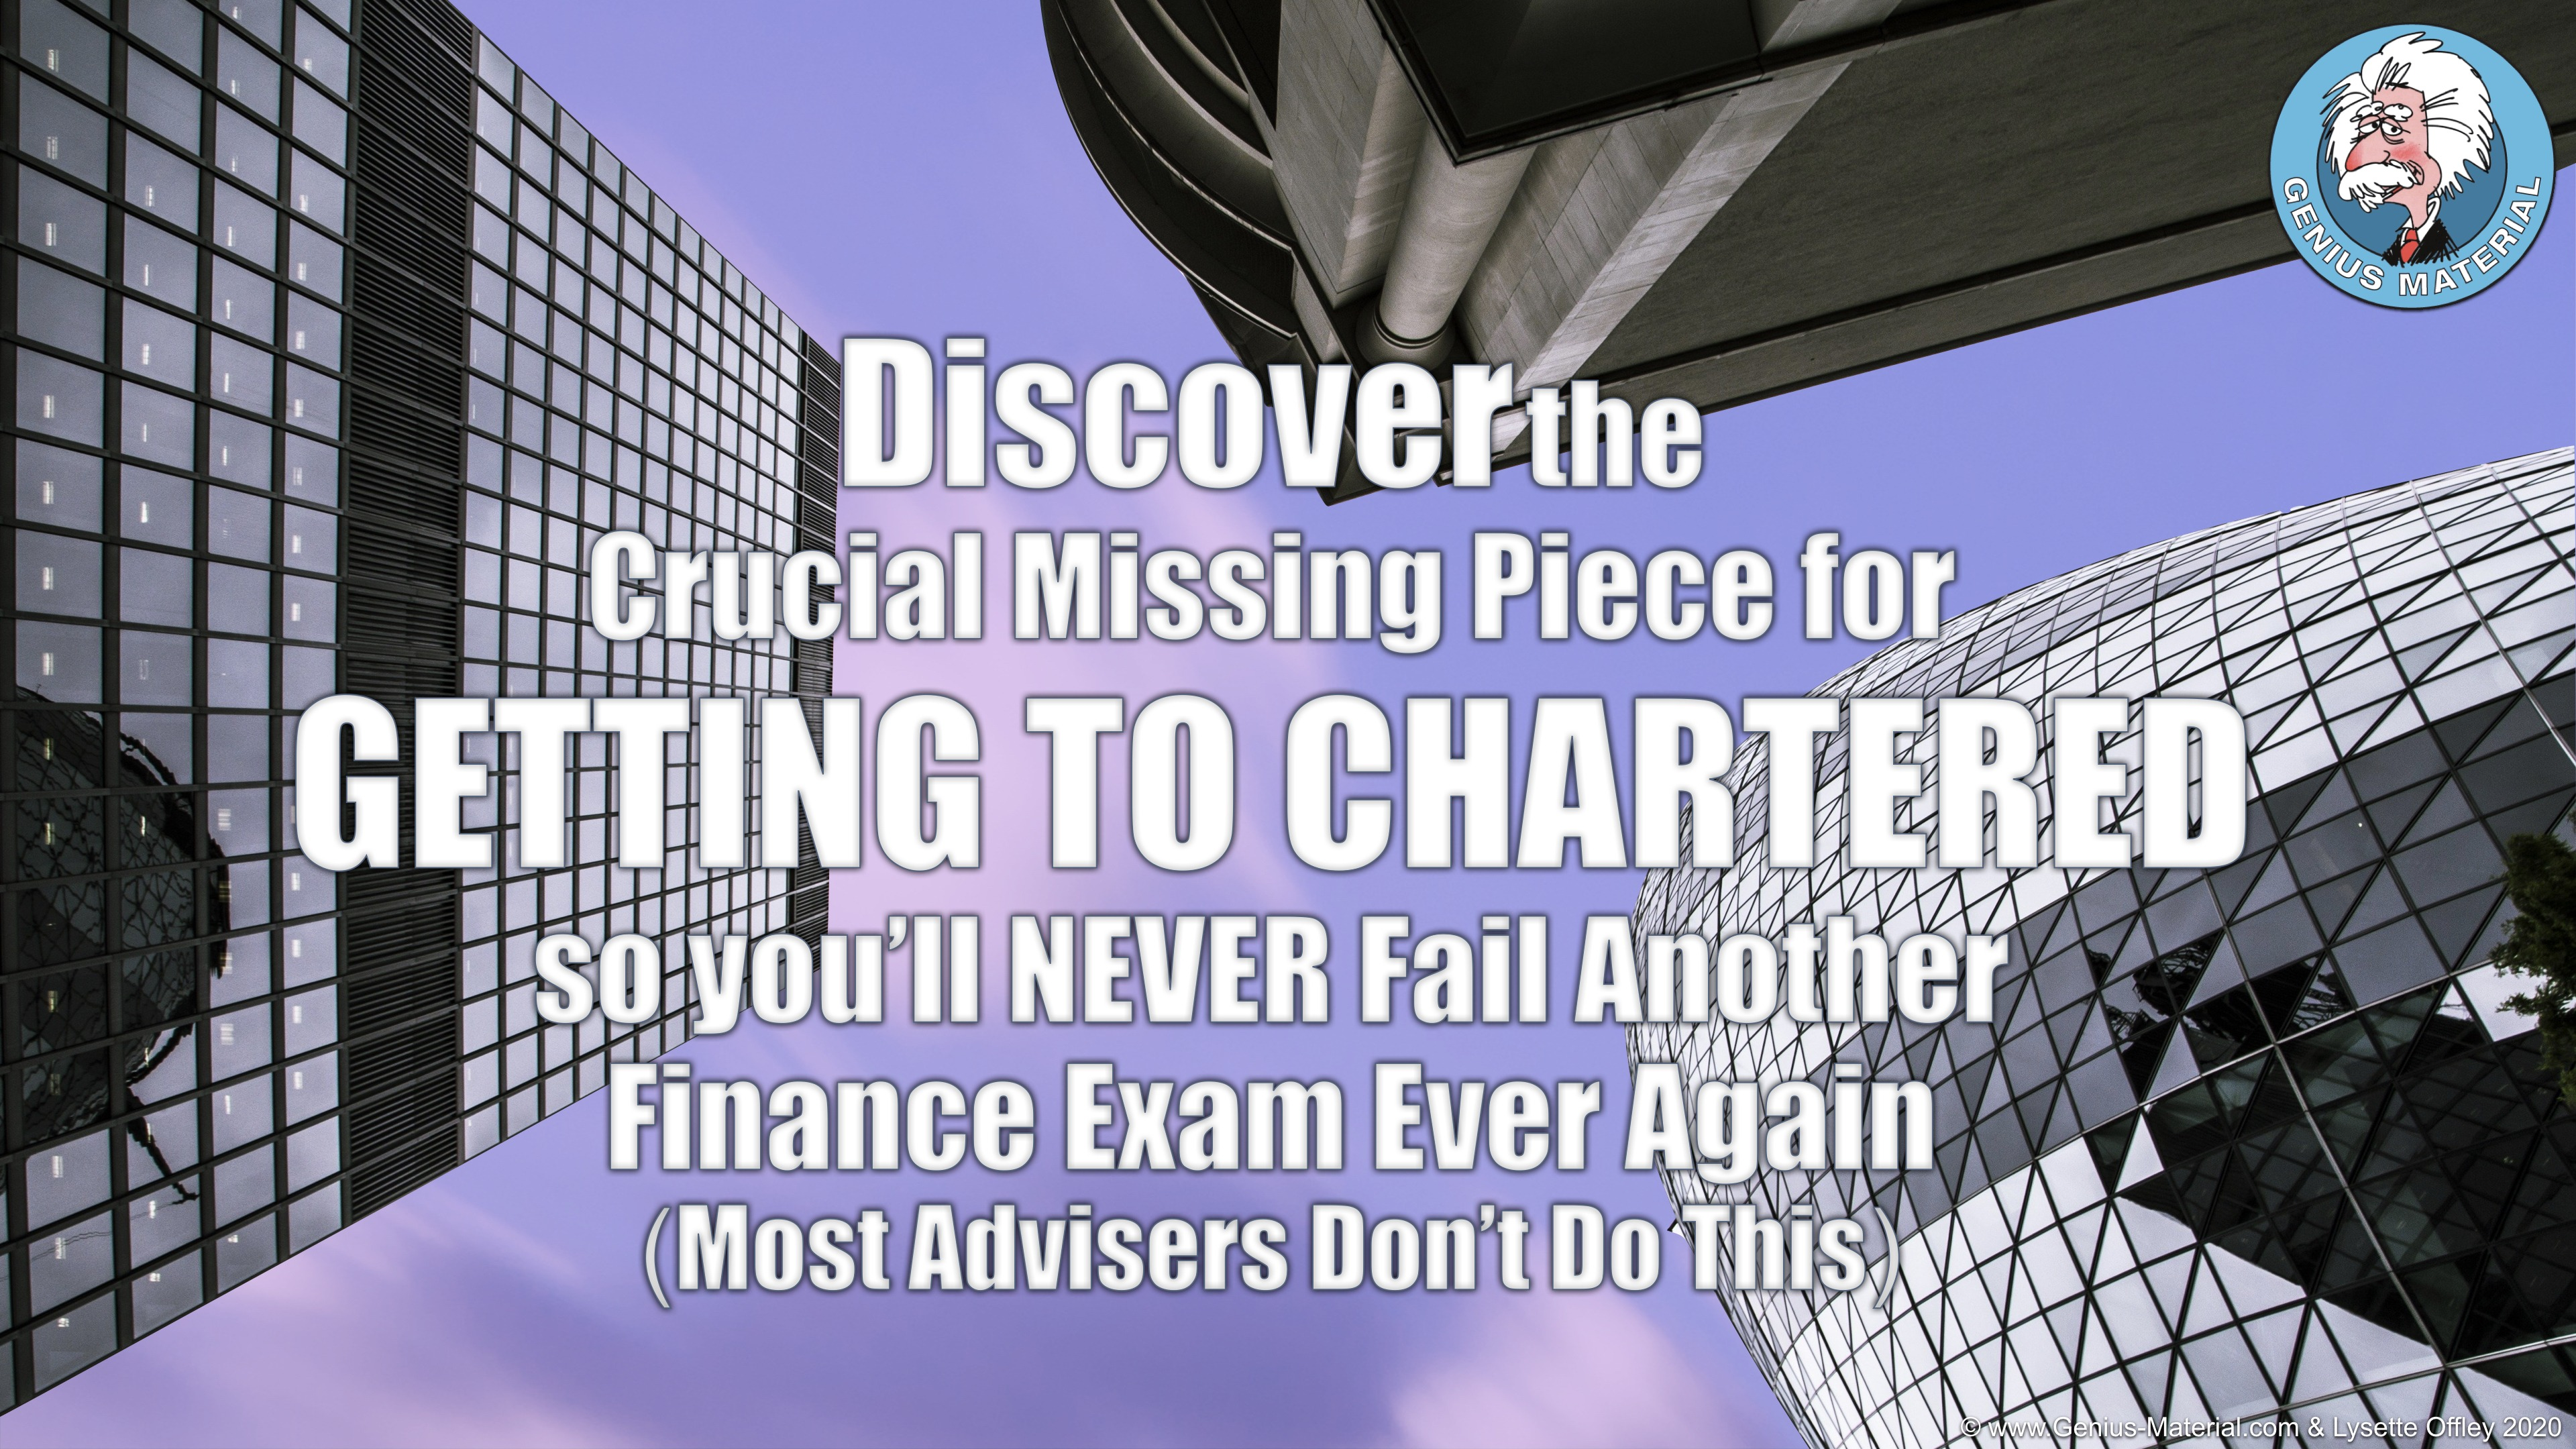 The Crucial Missing Piece for GETTING TO CHARTERED